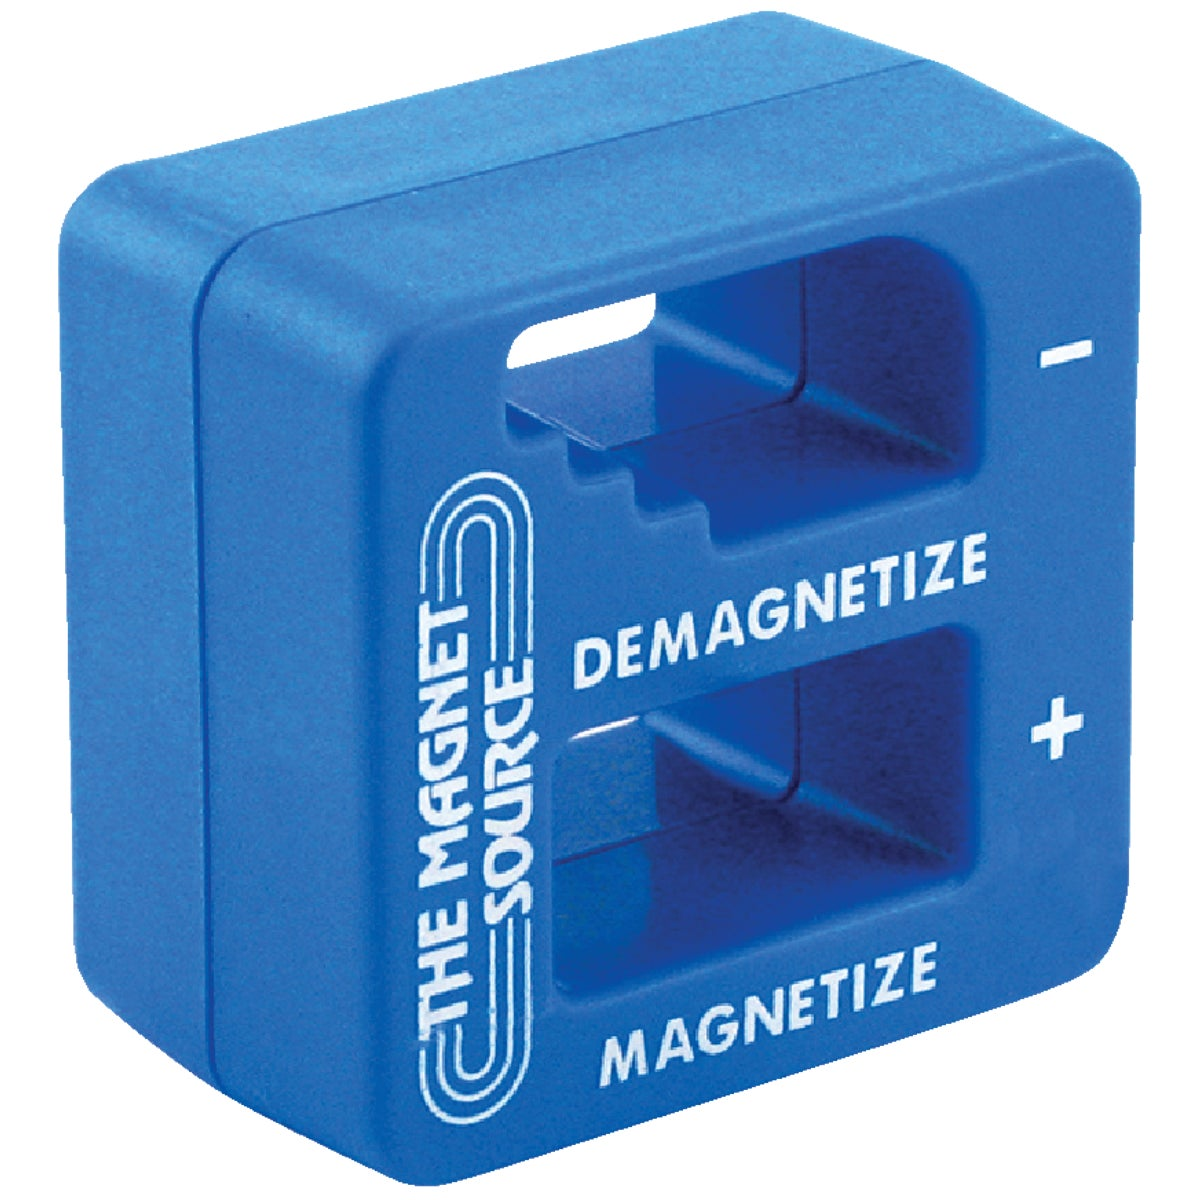 MAGNETIZER/DEMAGNETIZER - 07524 by Master Magnetics